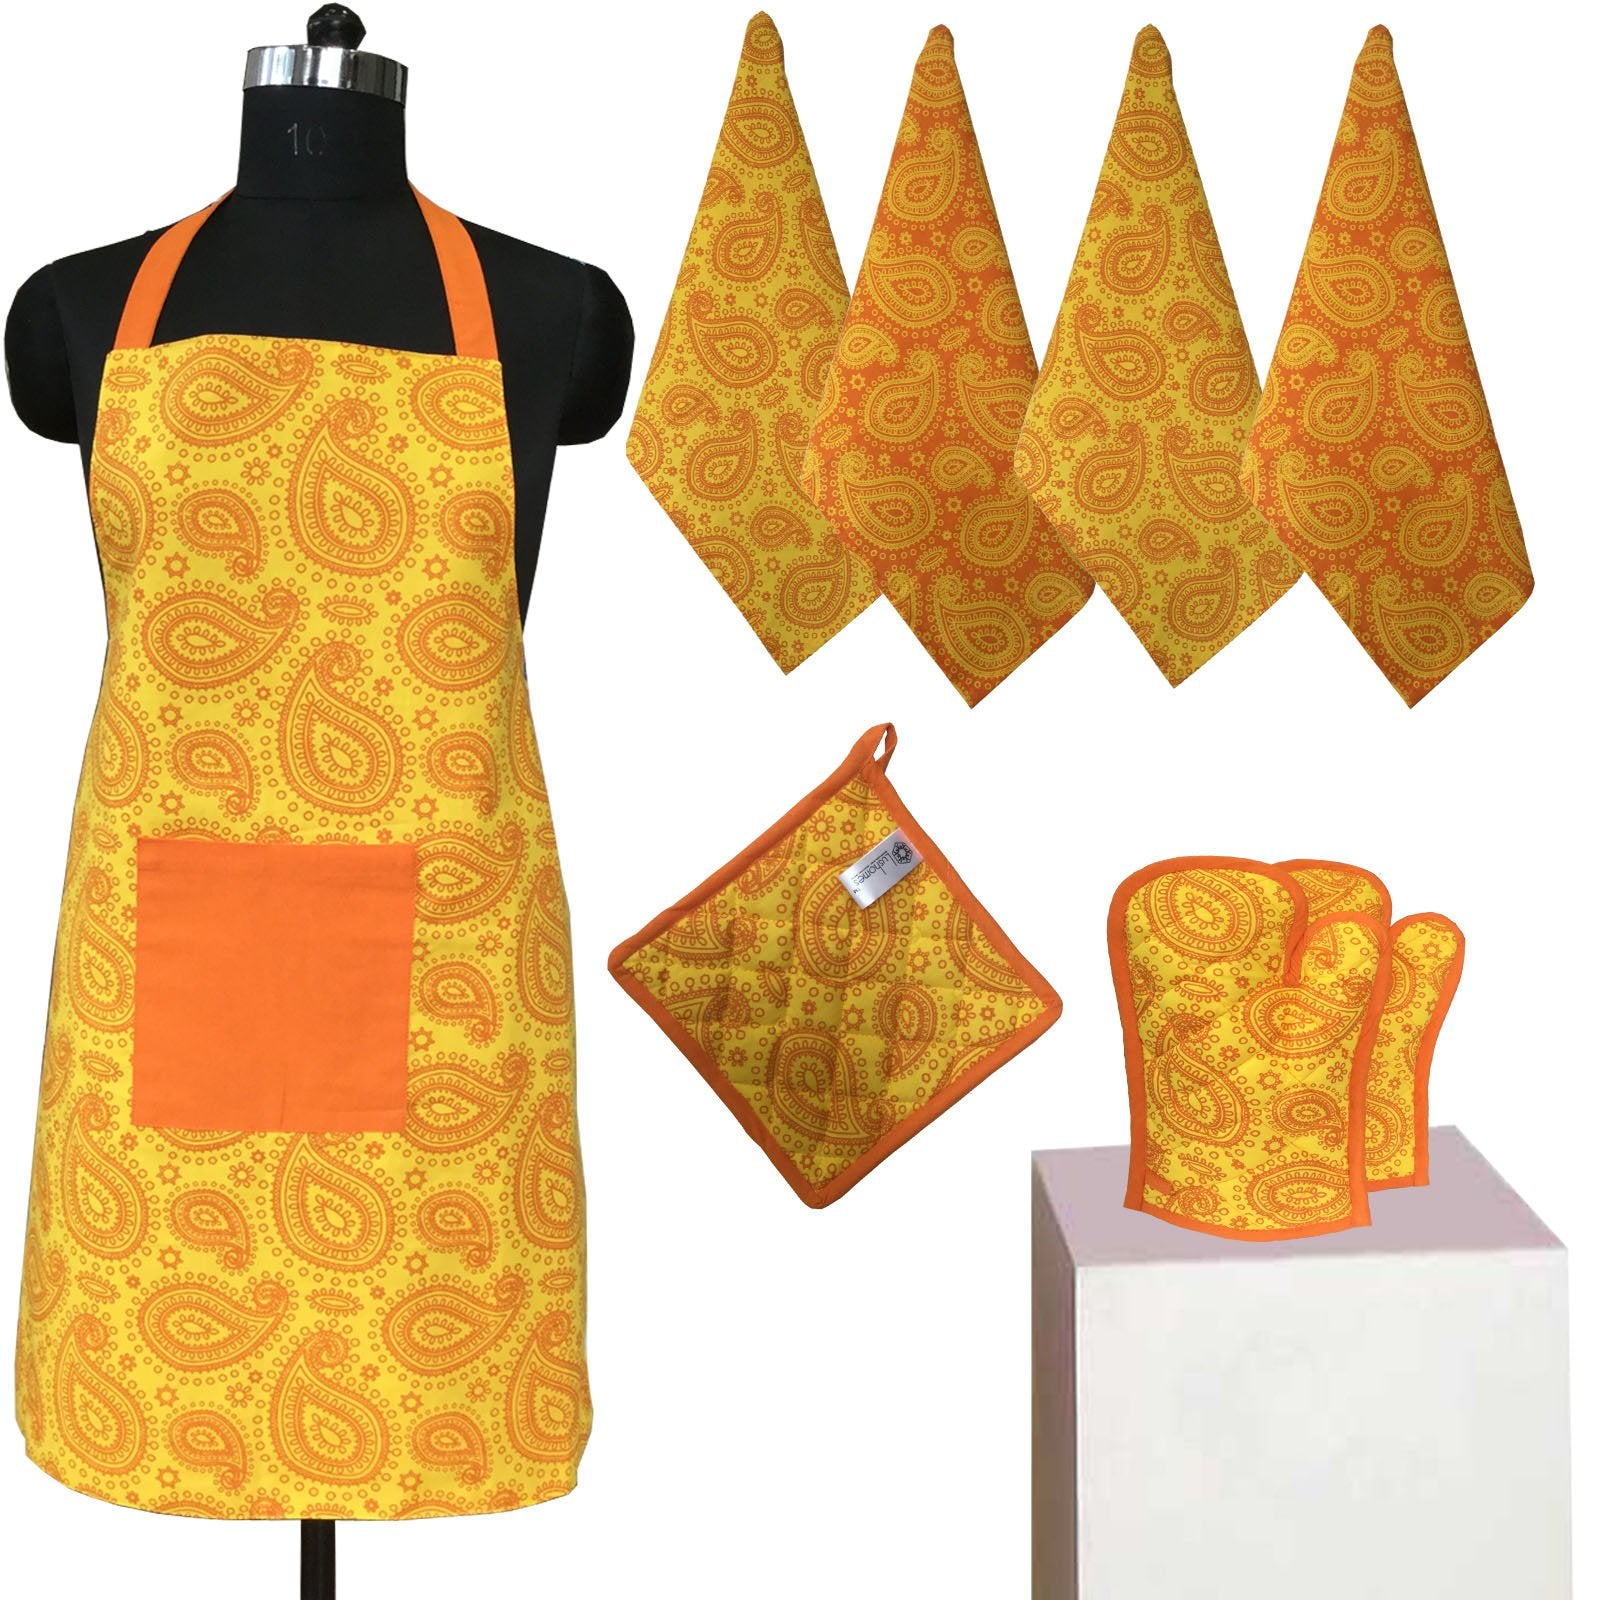 Lushomes Colorful Printed 2 in 1 Stylish Reversible Apron Set ( 1 Apron, 4 Kitchen towels, 2 Oven Mittens, 1 Pot Holder)